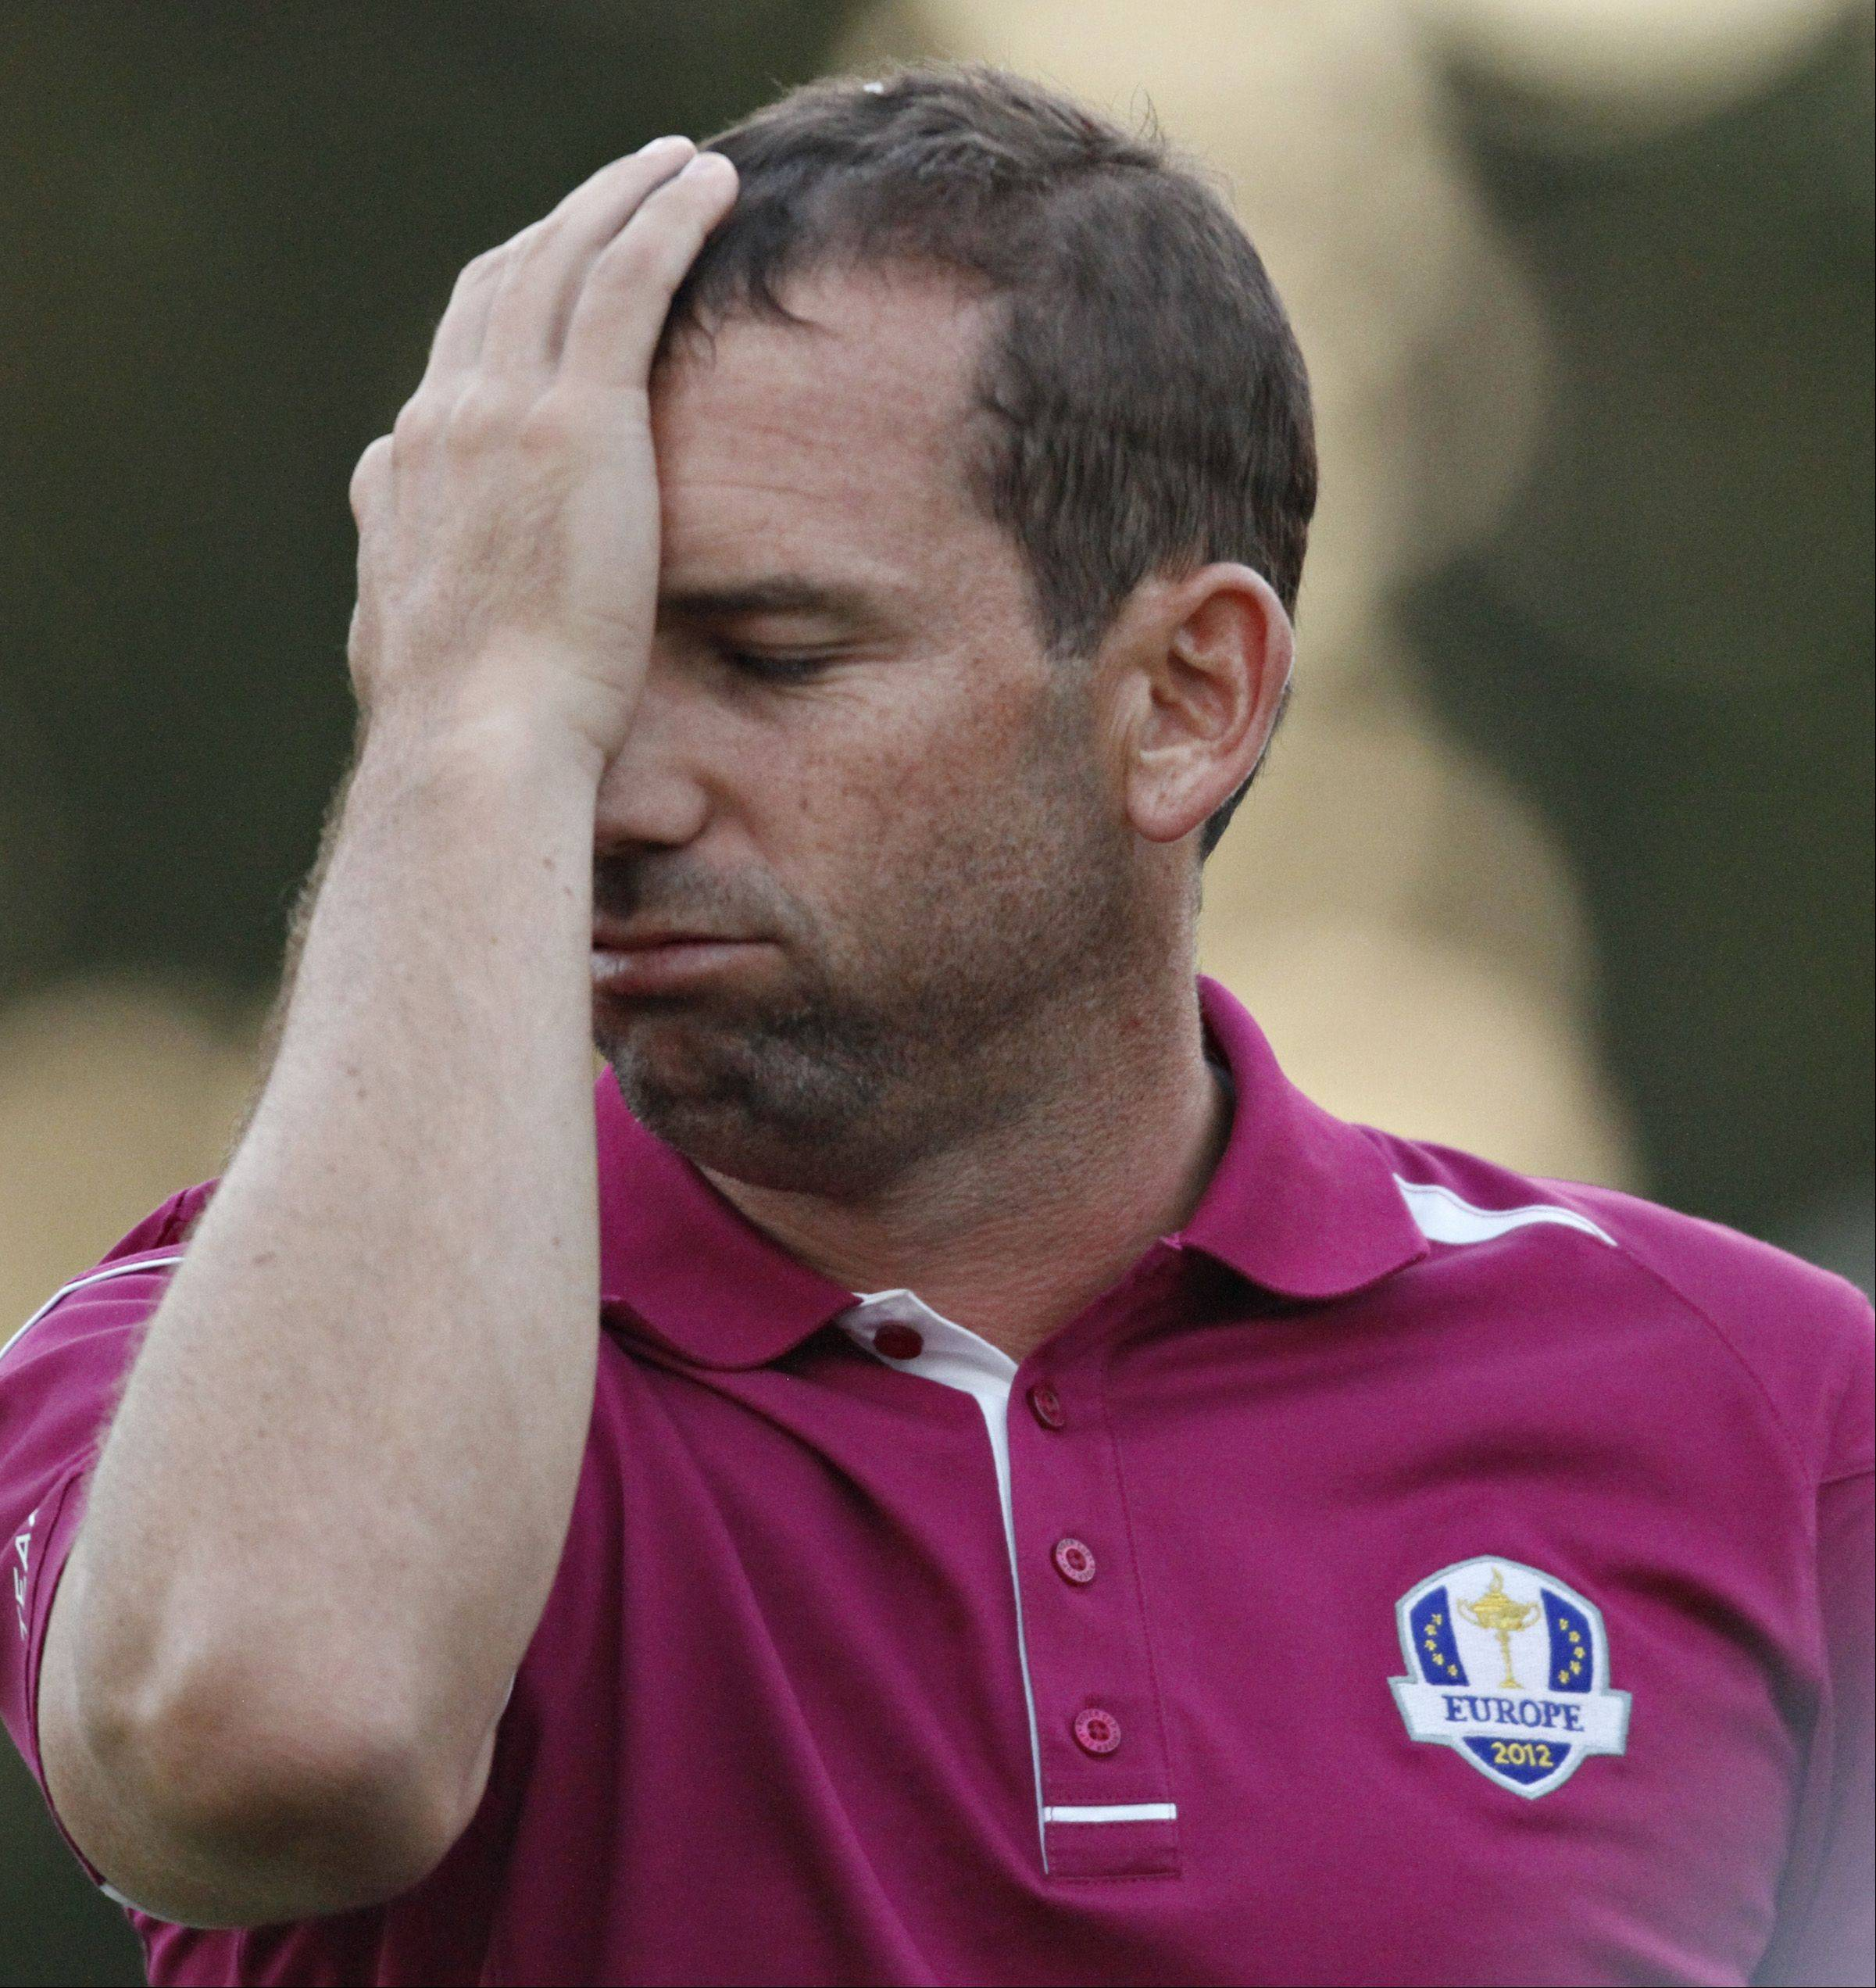 It was a rough day for Sergio Garcia and the European team at Medinah.